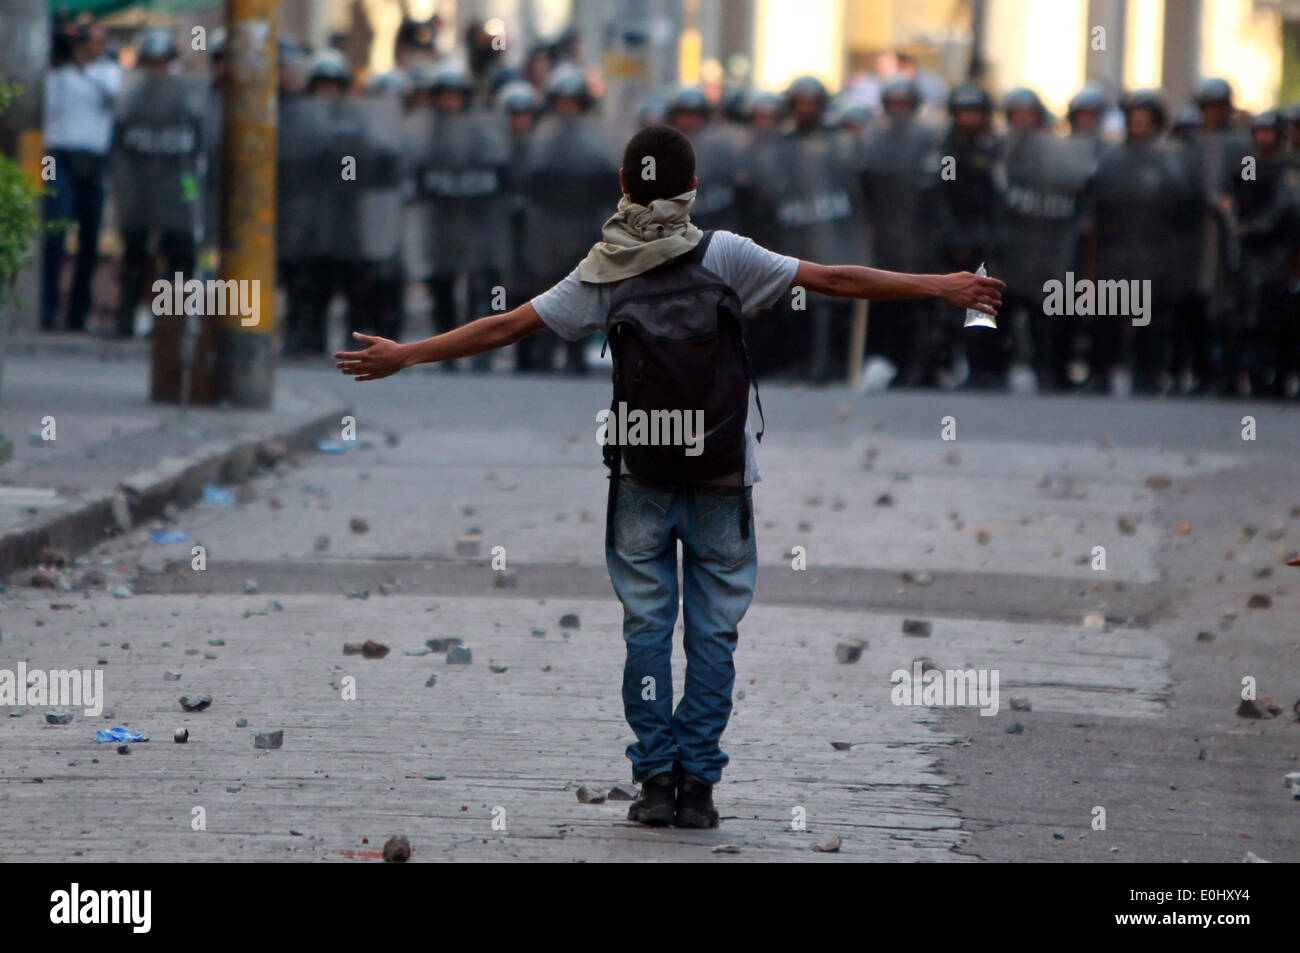 Tegucigalpa, Honduras. 13th May, 2014. A supporter of the former Honduran President Manuel Zelaya participates in a clash against police in front of the National Congress in Tegucigalpa, Honduras, on May 13, 2014. Followers and deputies of the Liberty and Refoundation Party (Libre, for its acronym in Spanish), the second political force in Honduras, broke in the National Congress on Tuesday, after clashing with police elements that guarded the Legislative Palace. Credit:  Rafael Ochoa/Xinhua/Alamy Live News Stock Photo